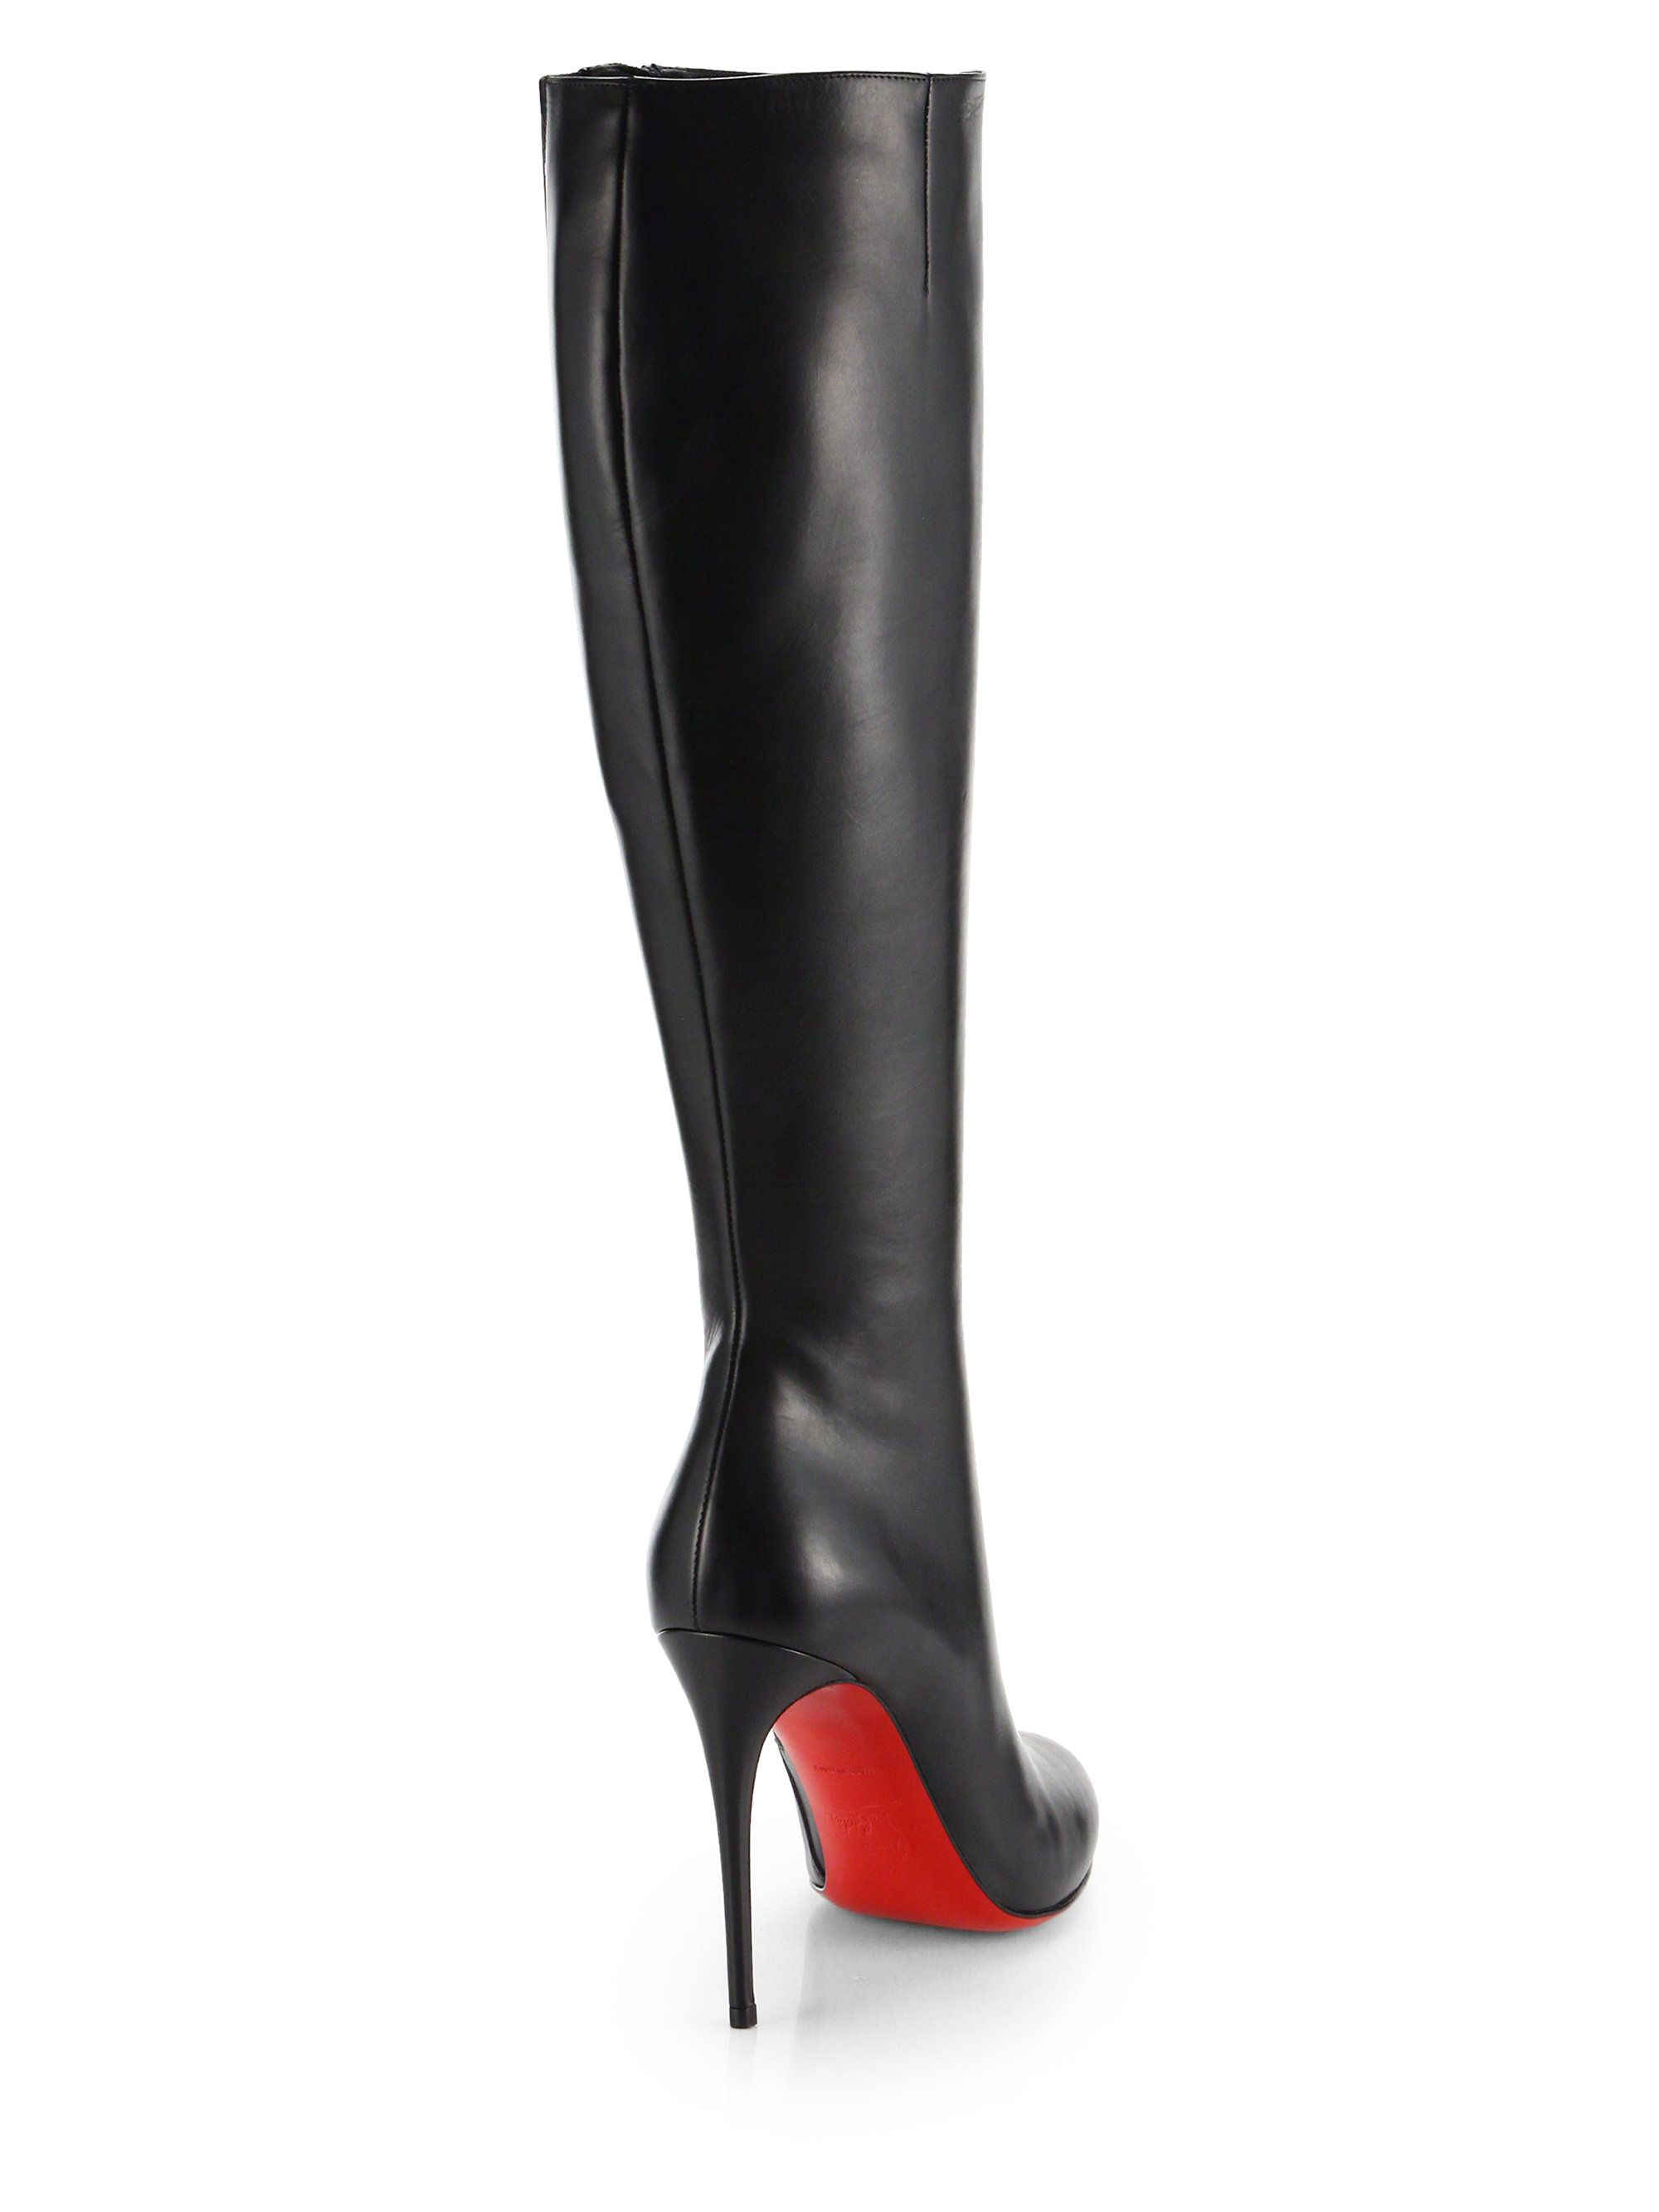 competitive price 79c46 6b981 Christian Louboutin | Things to Wear in 2019 | Boots, Heeled ...